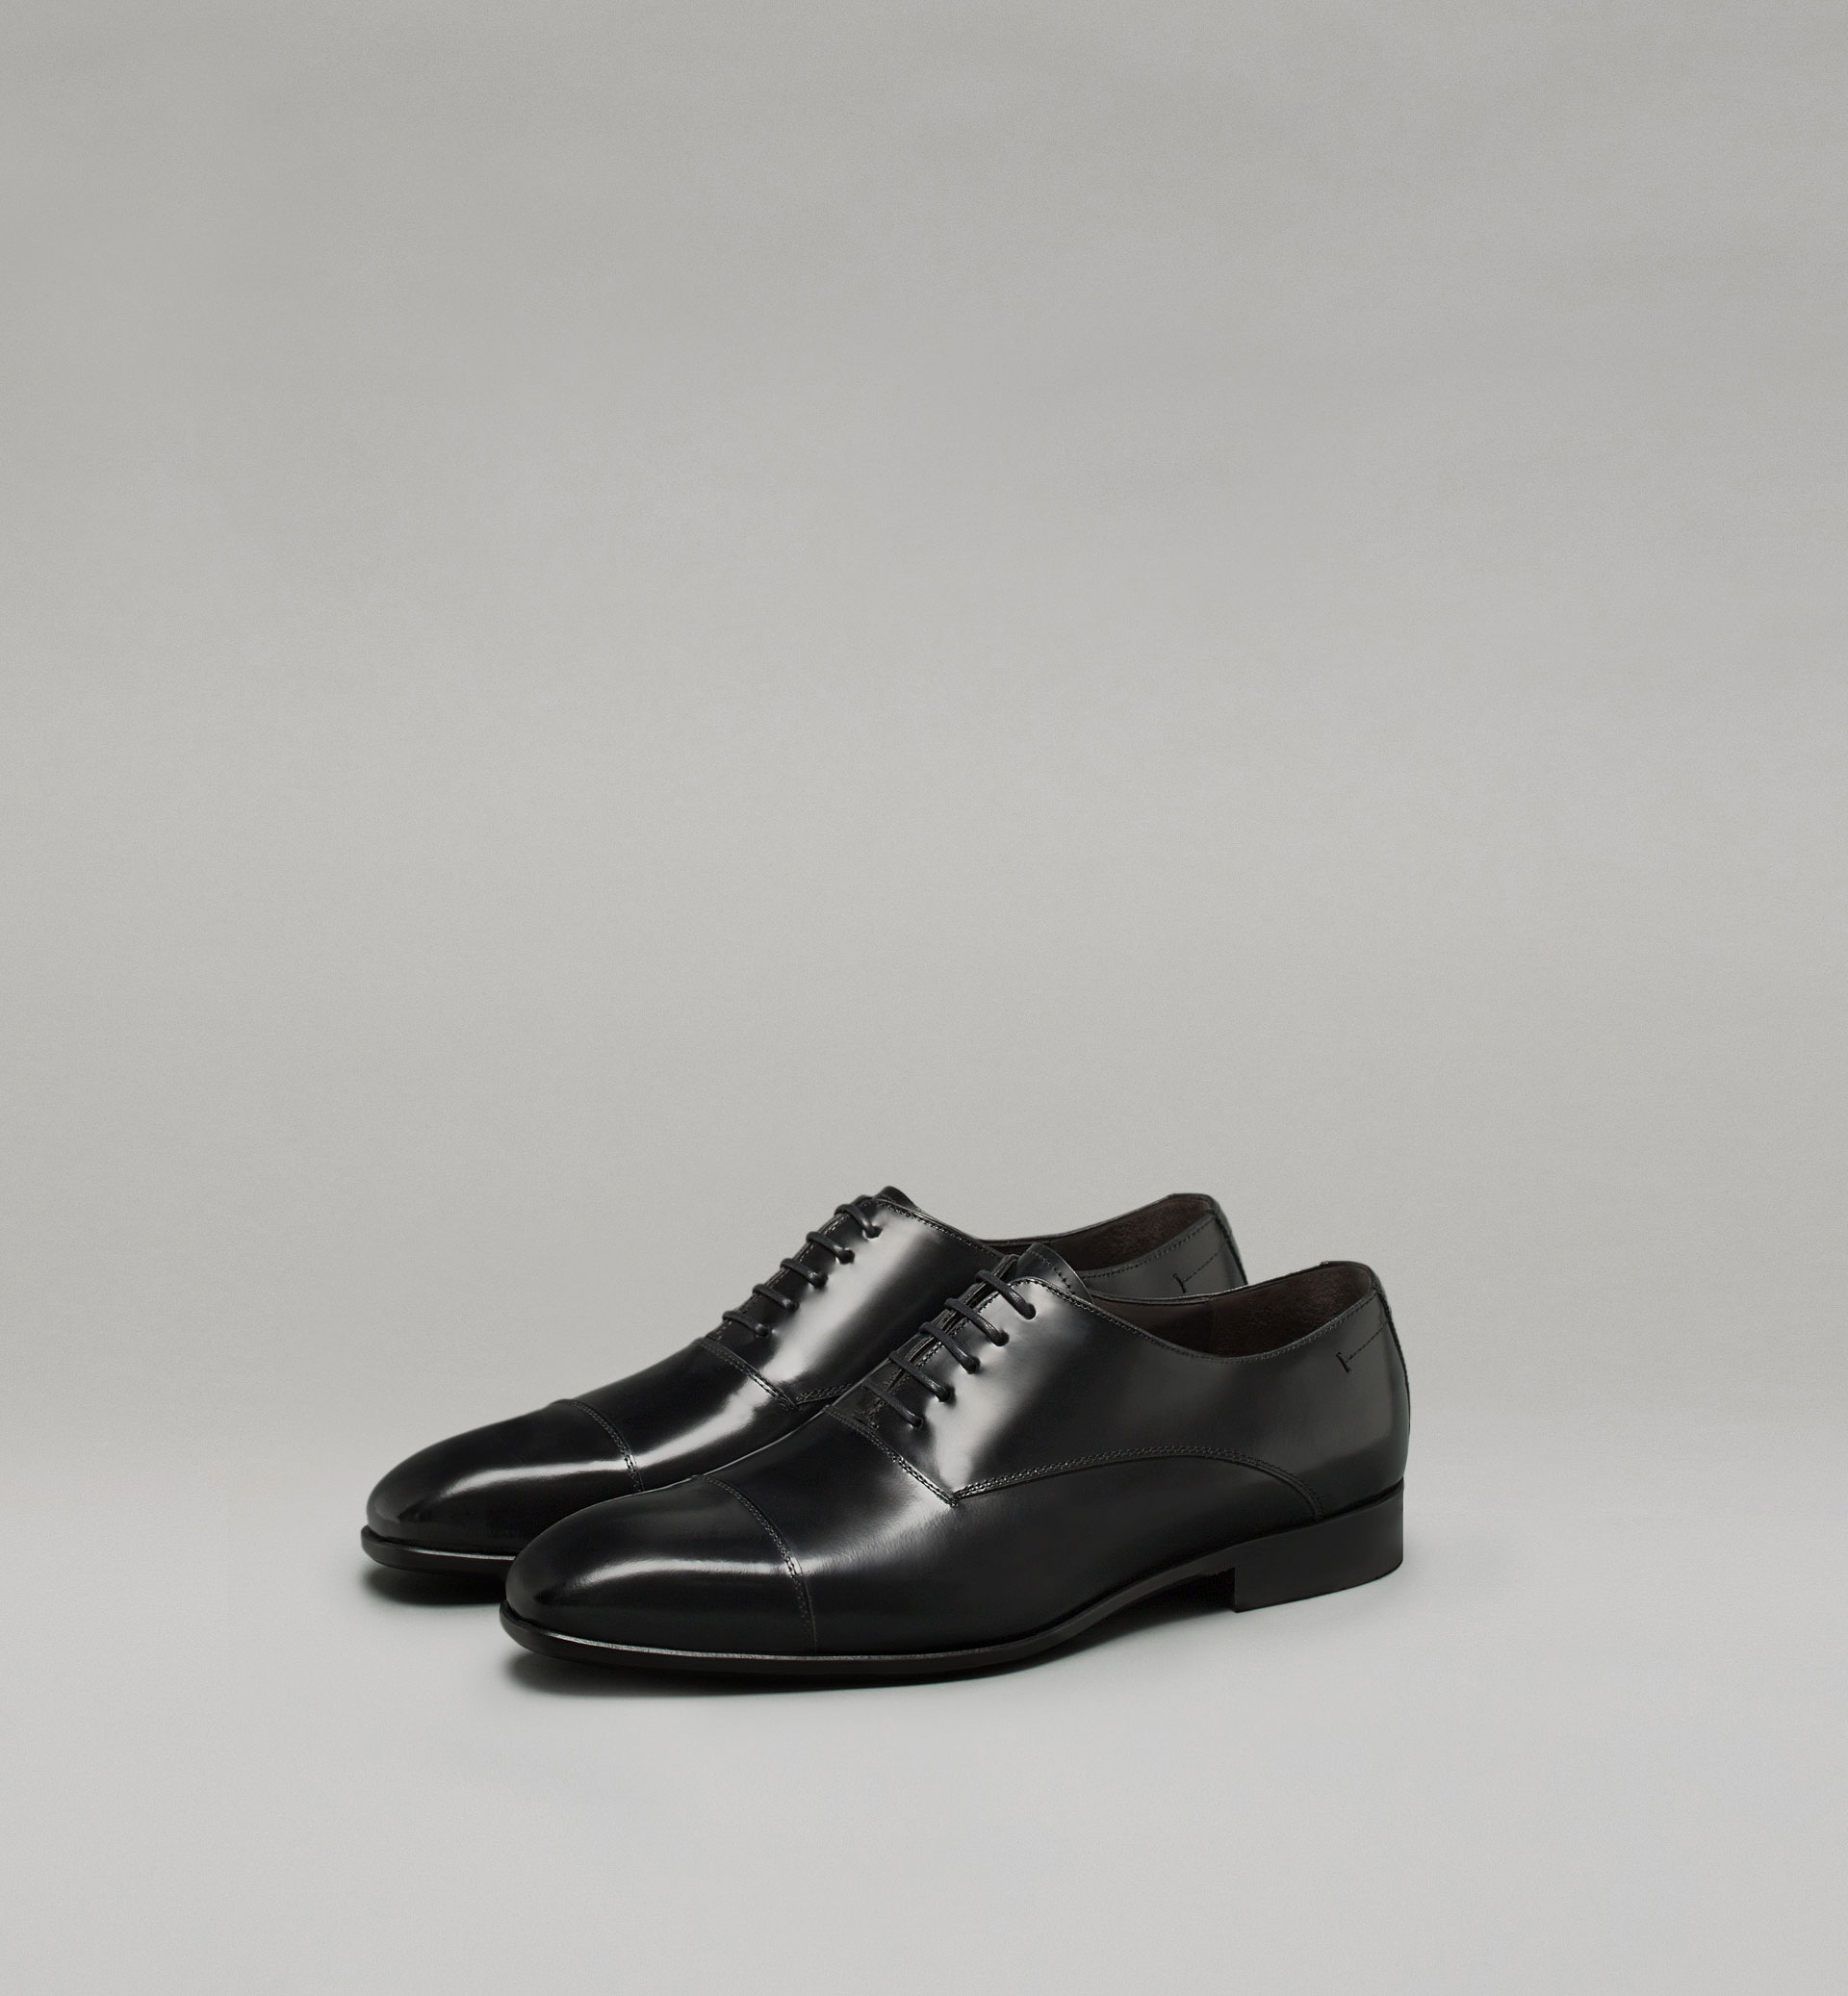 ZAPATO INGLÉS PIEL PERSONAL TAILORING